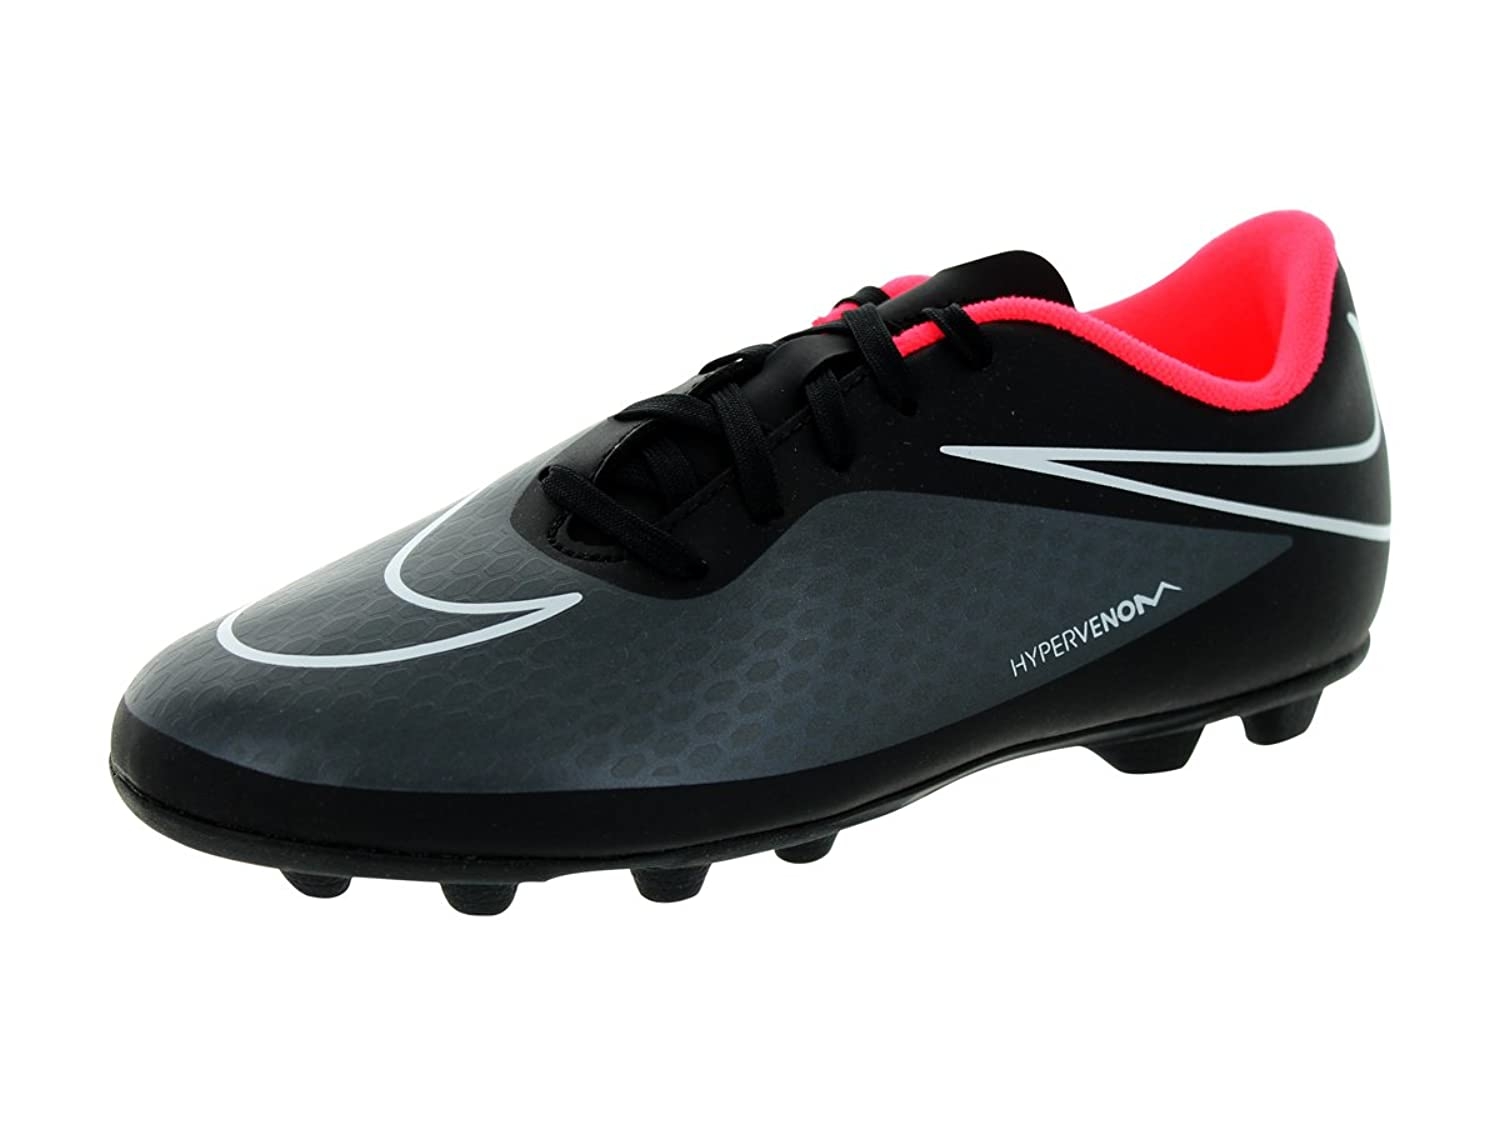 Nike Soccer Cleats For Toddlers Soccer Cleat Nike Kids